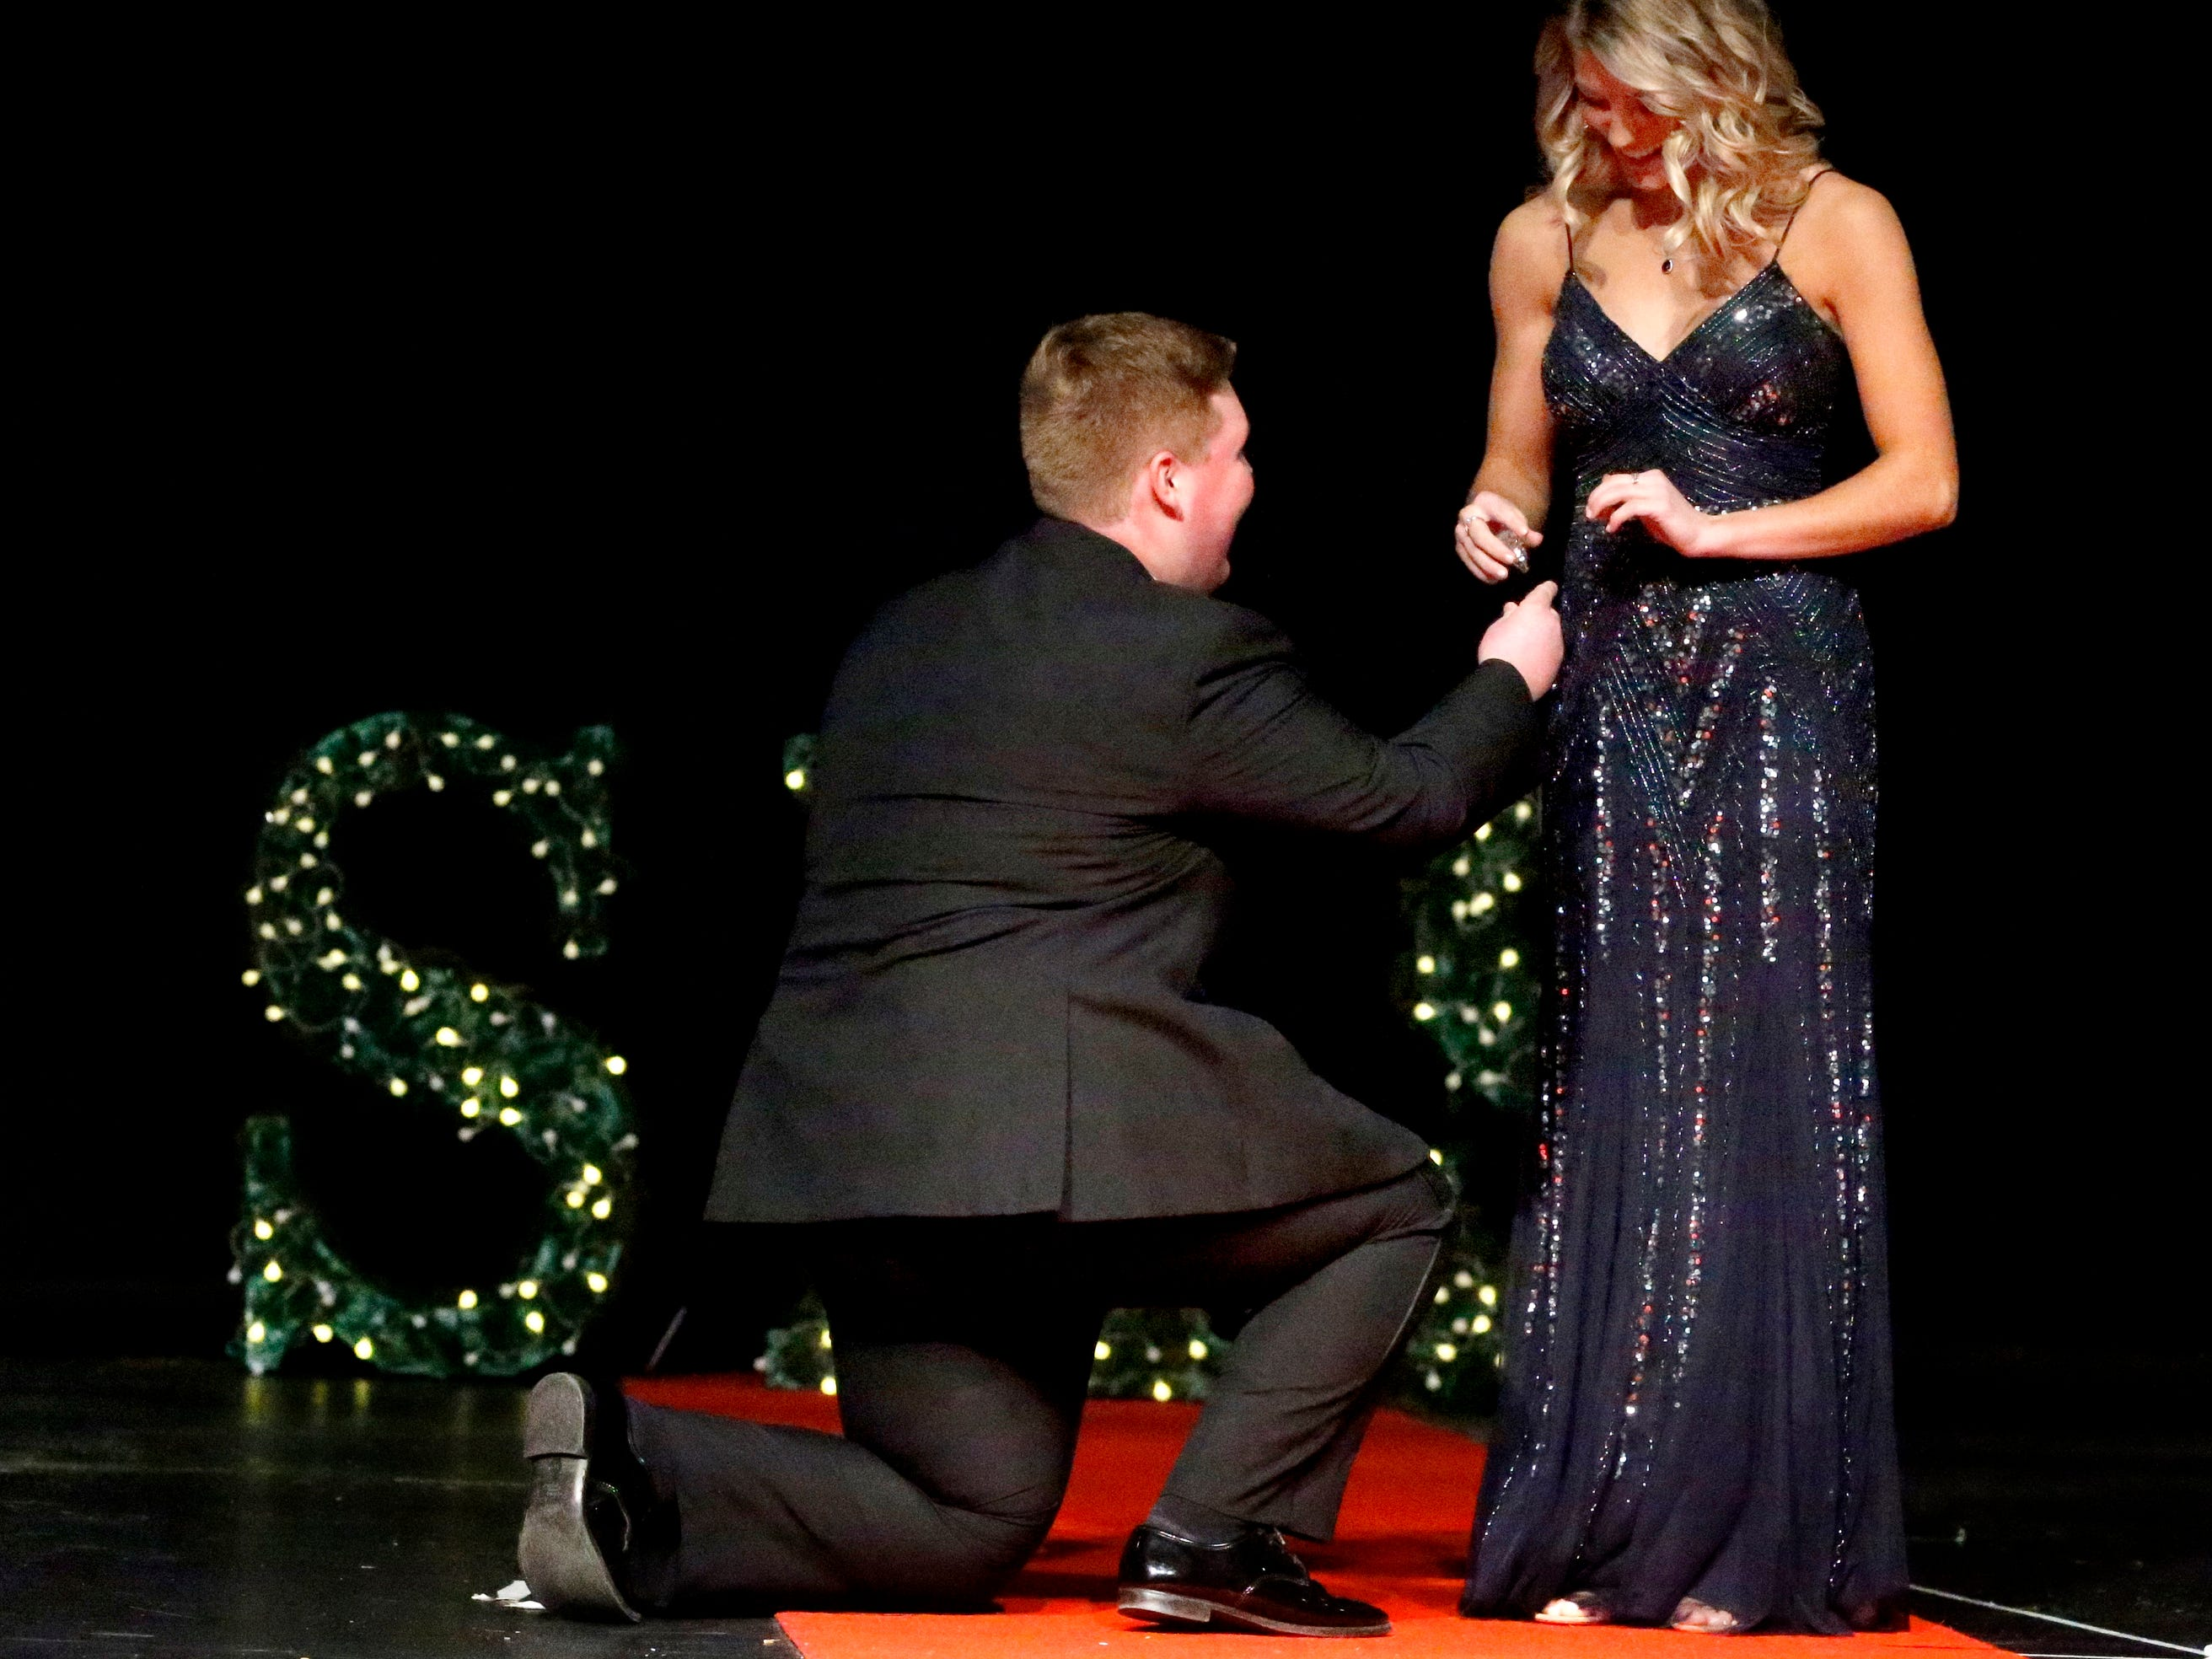 Hunter Paschall, left pretends to present Presley Leebrick, right with an engagment ring during the Siegel Prom Fashion show on Thursday, Feb. 14, 2019.